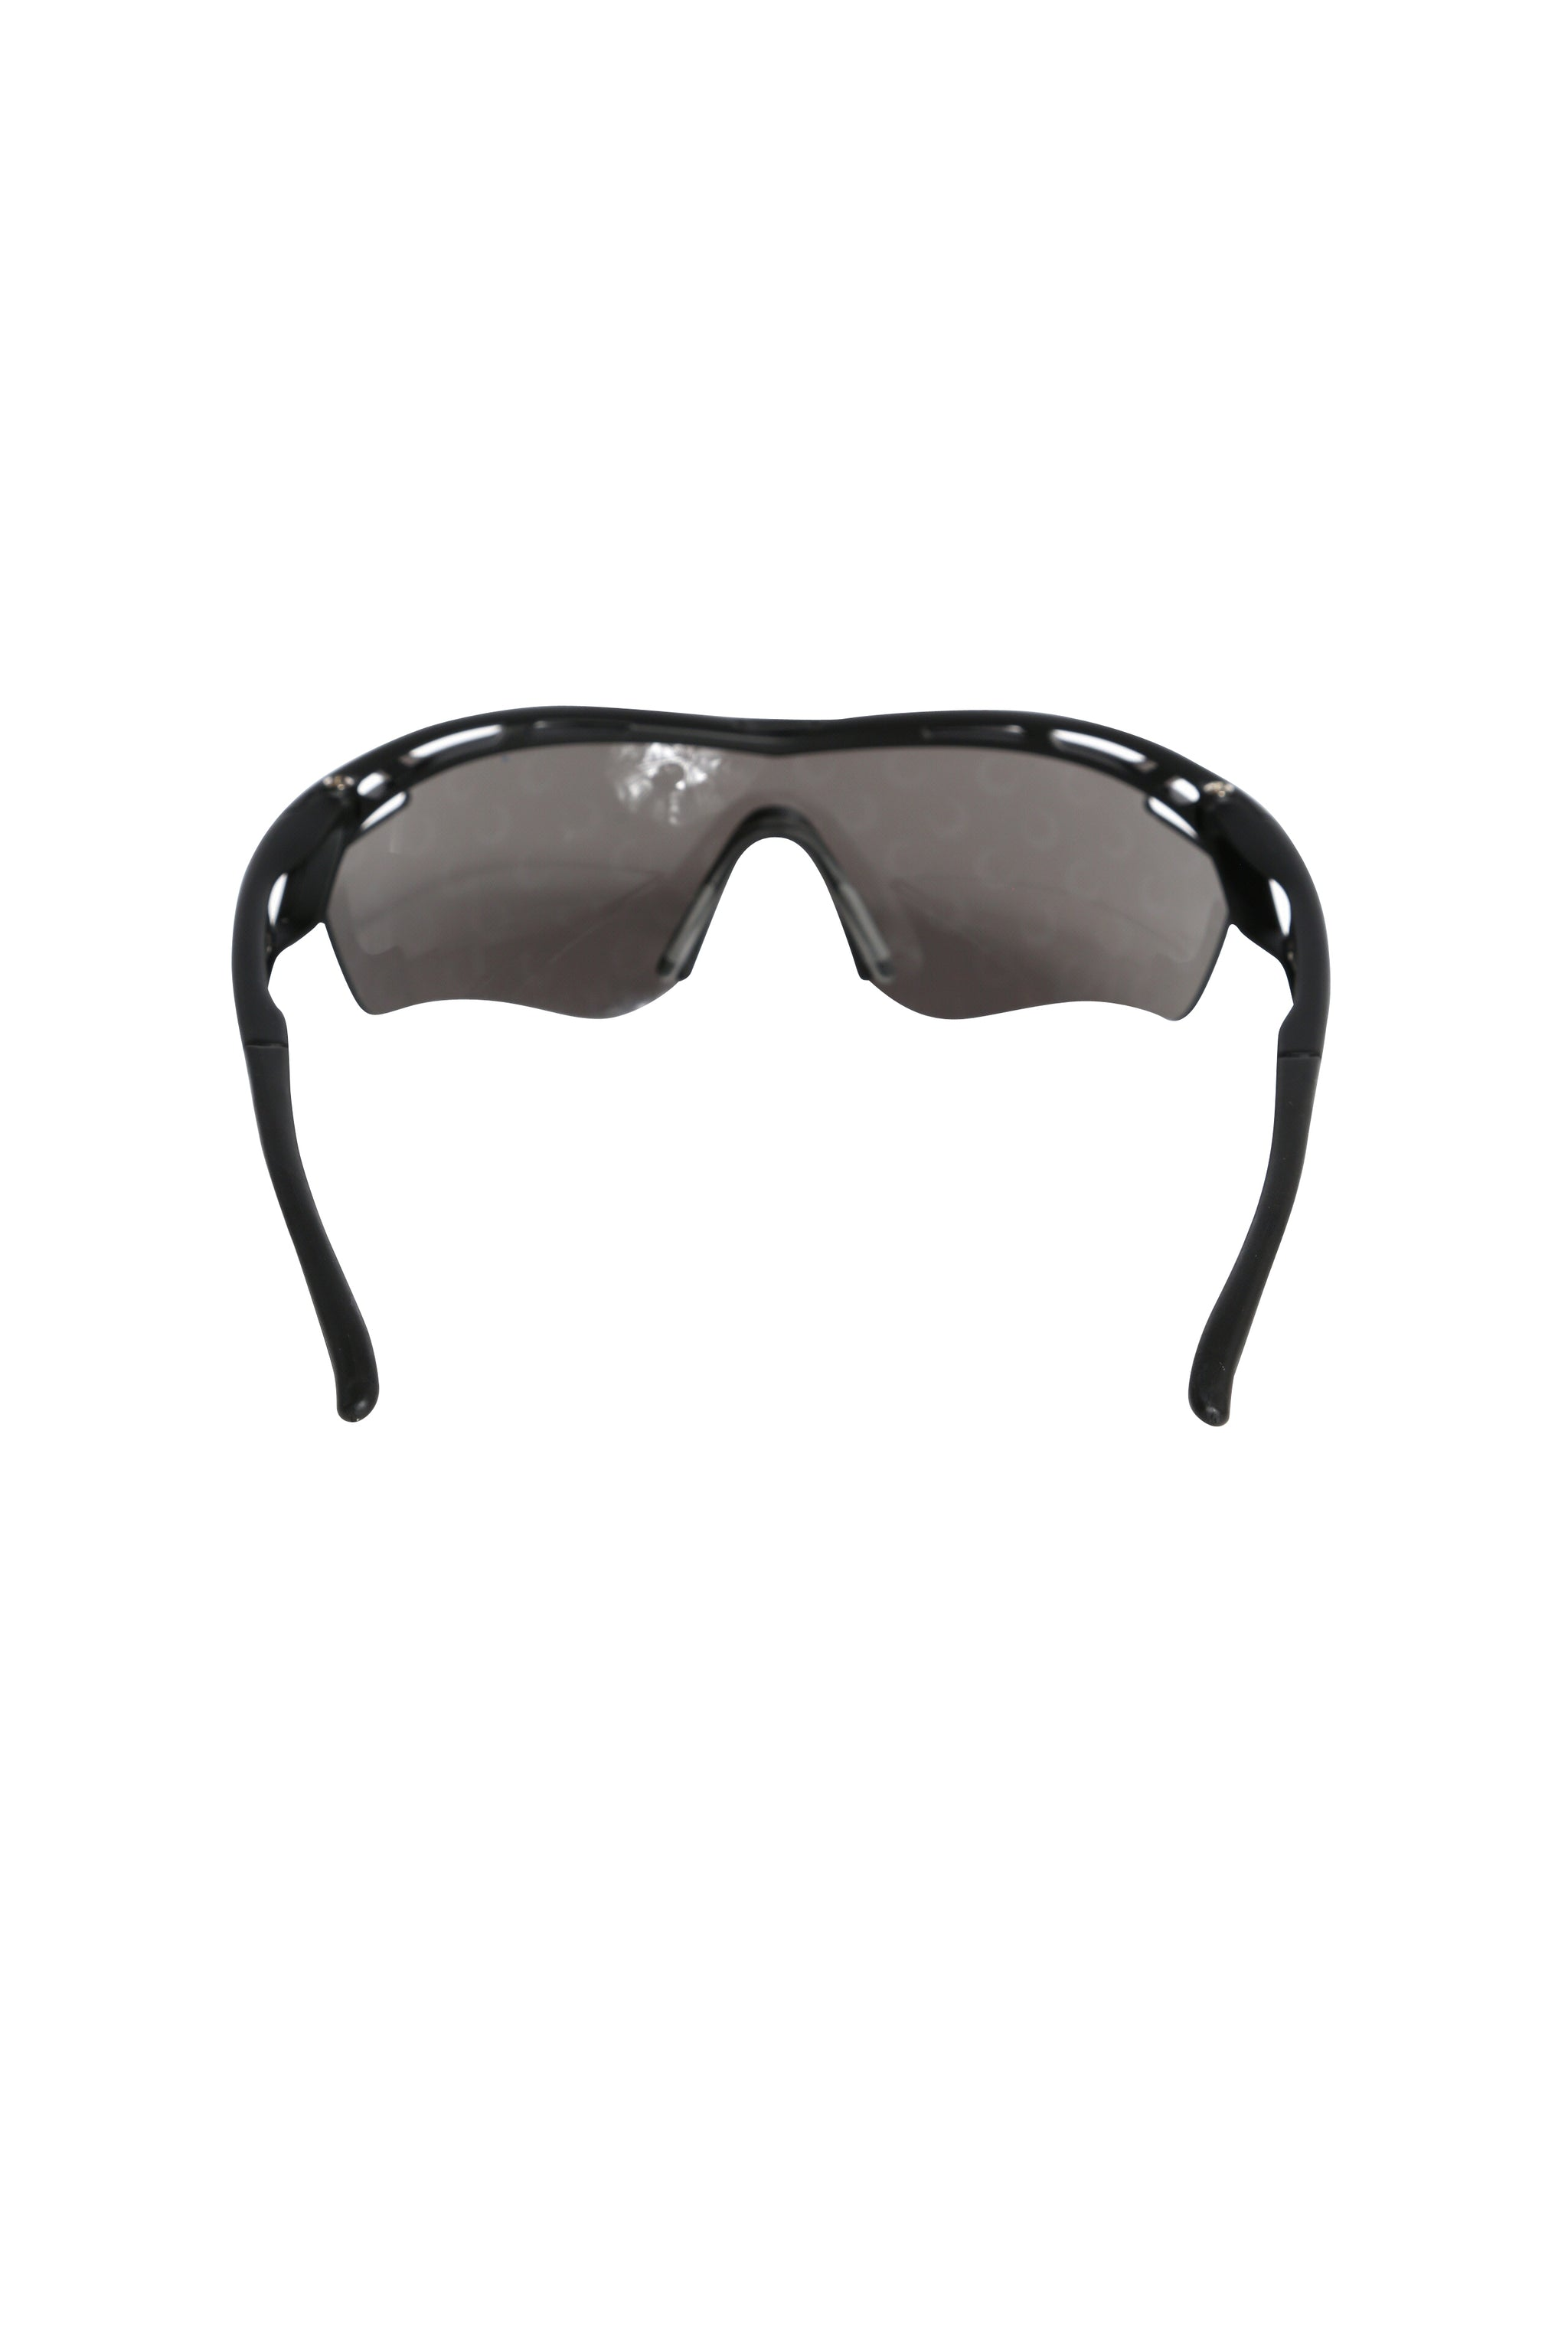 Moon Trylex Sunglasses X Rudy Project Black